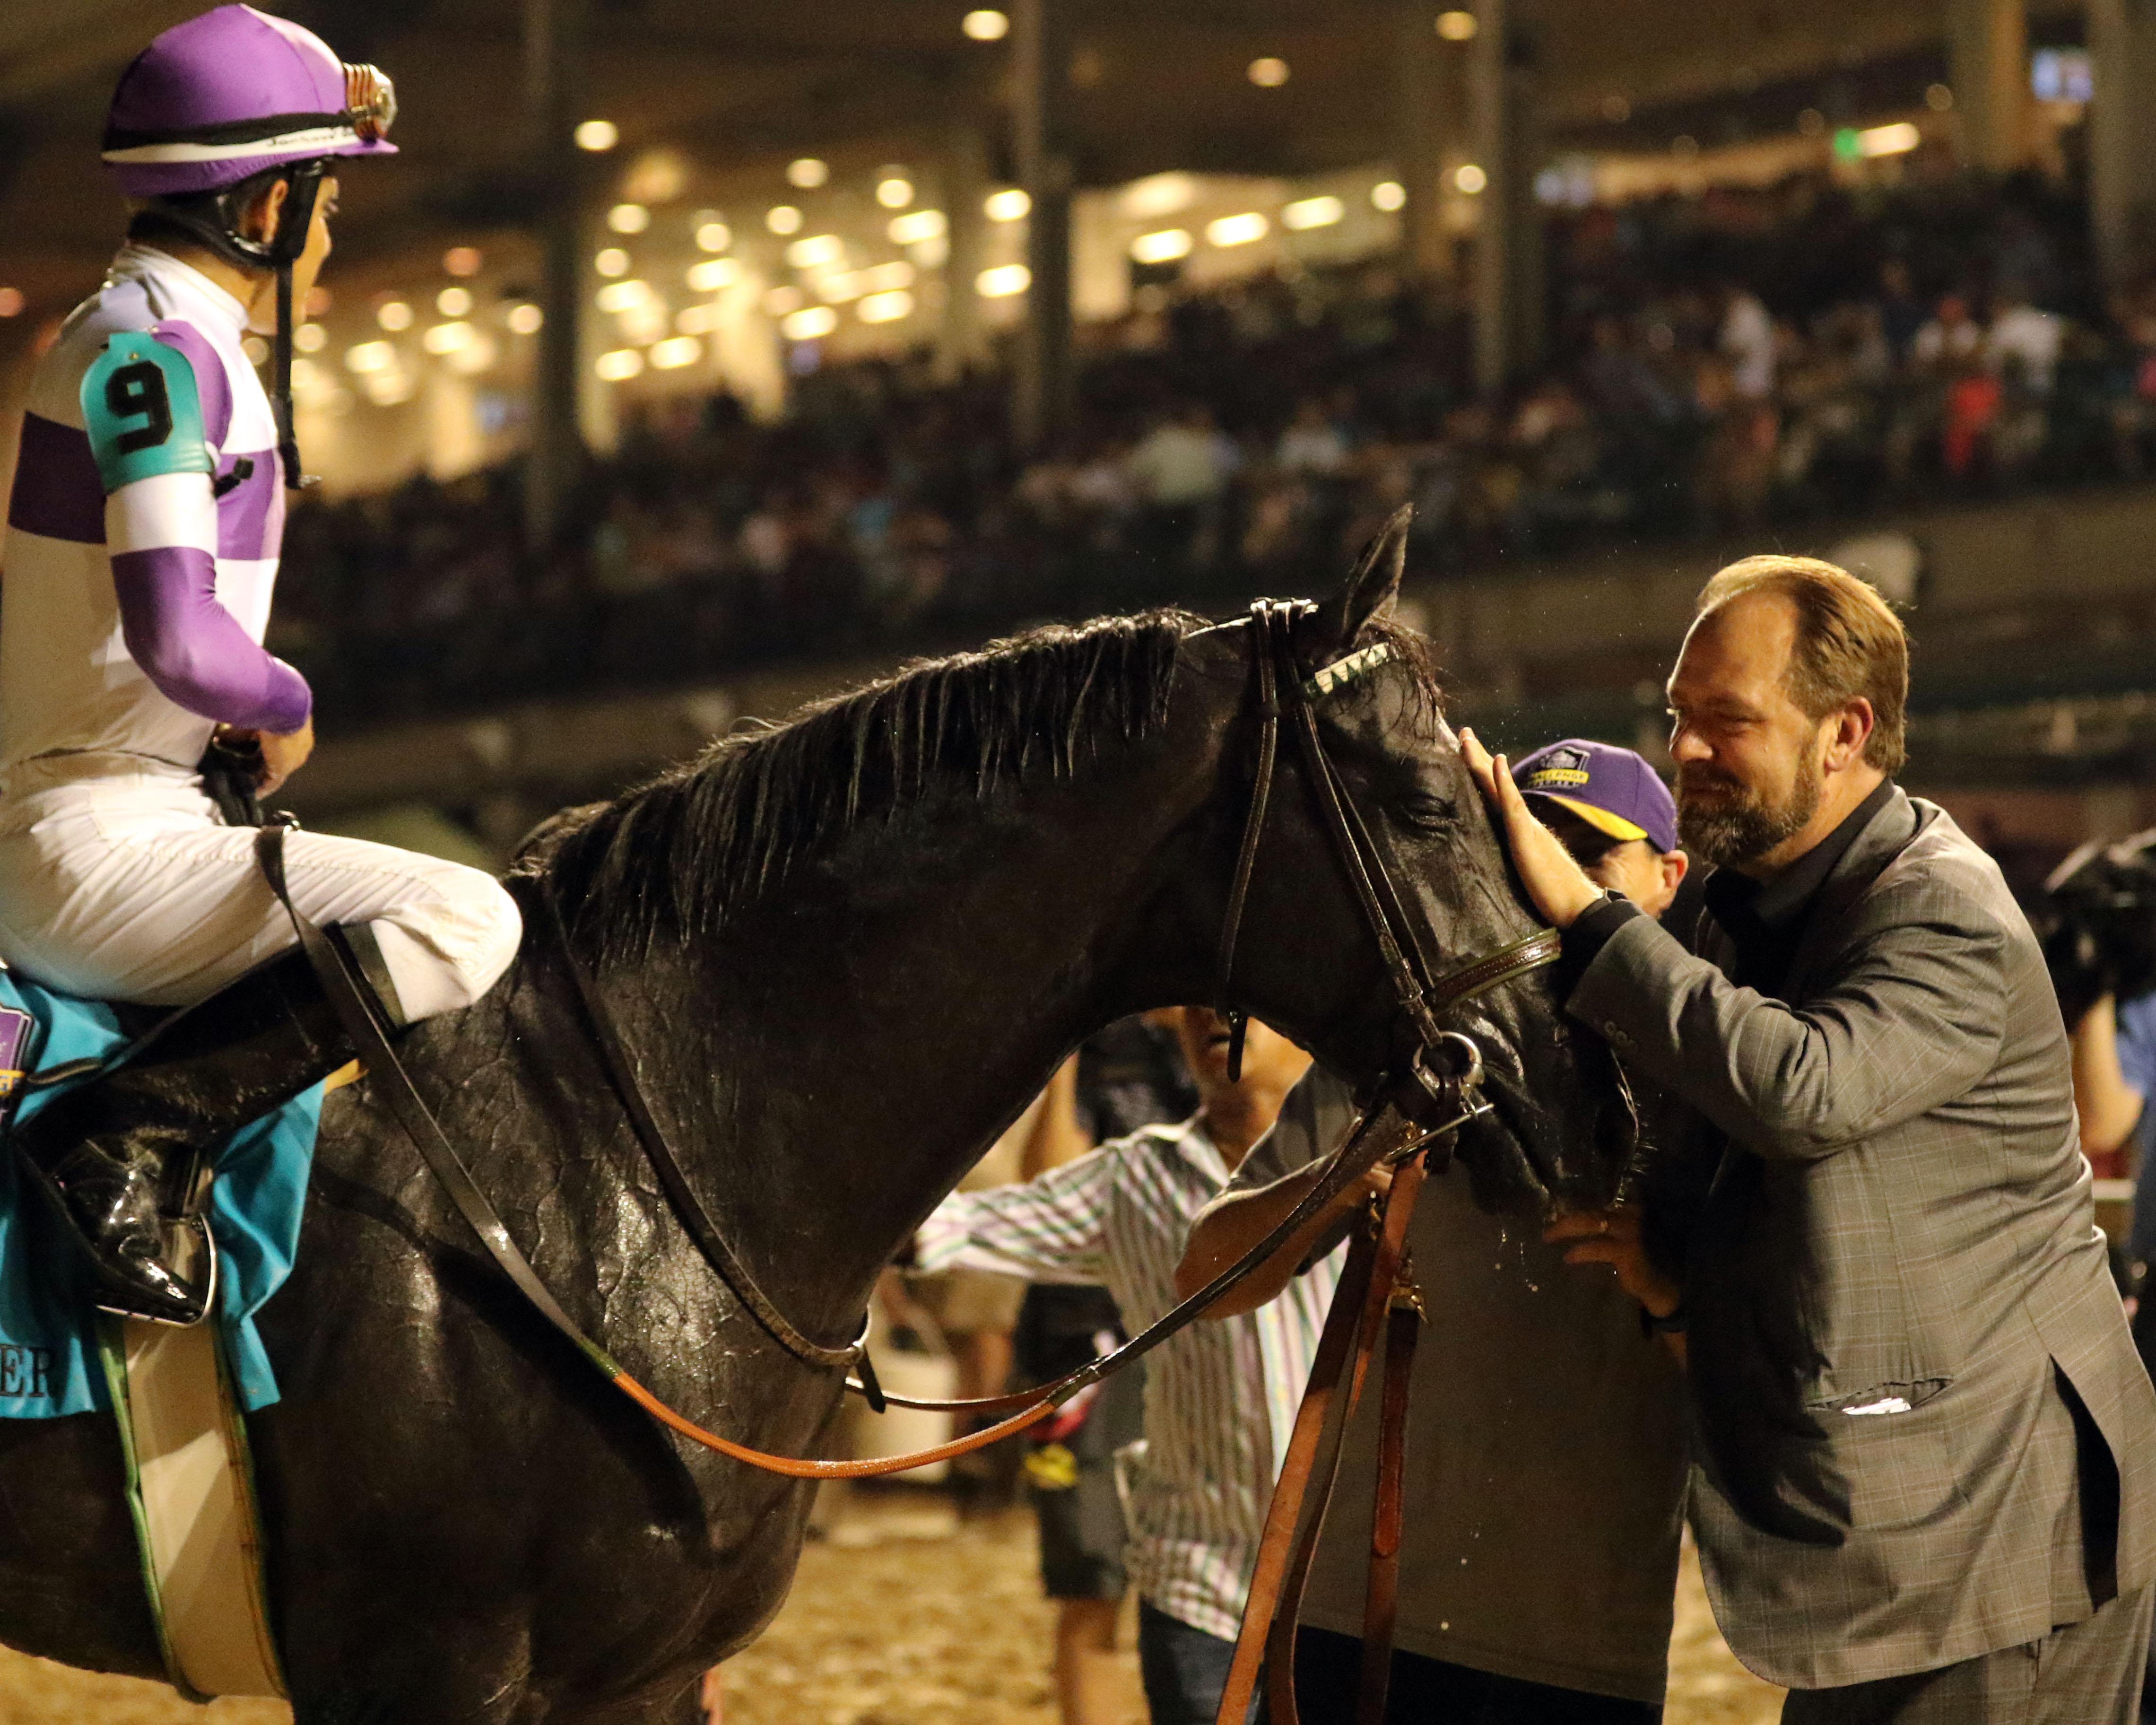 O'Neill pats Pavel after his win.